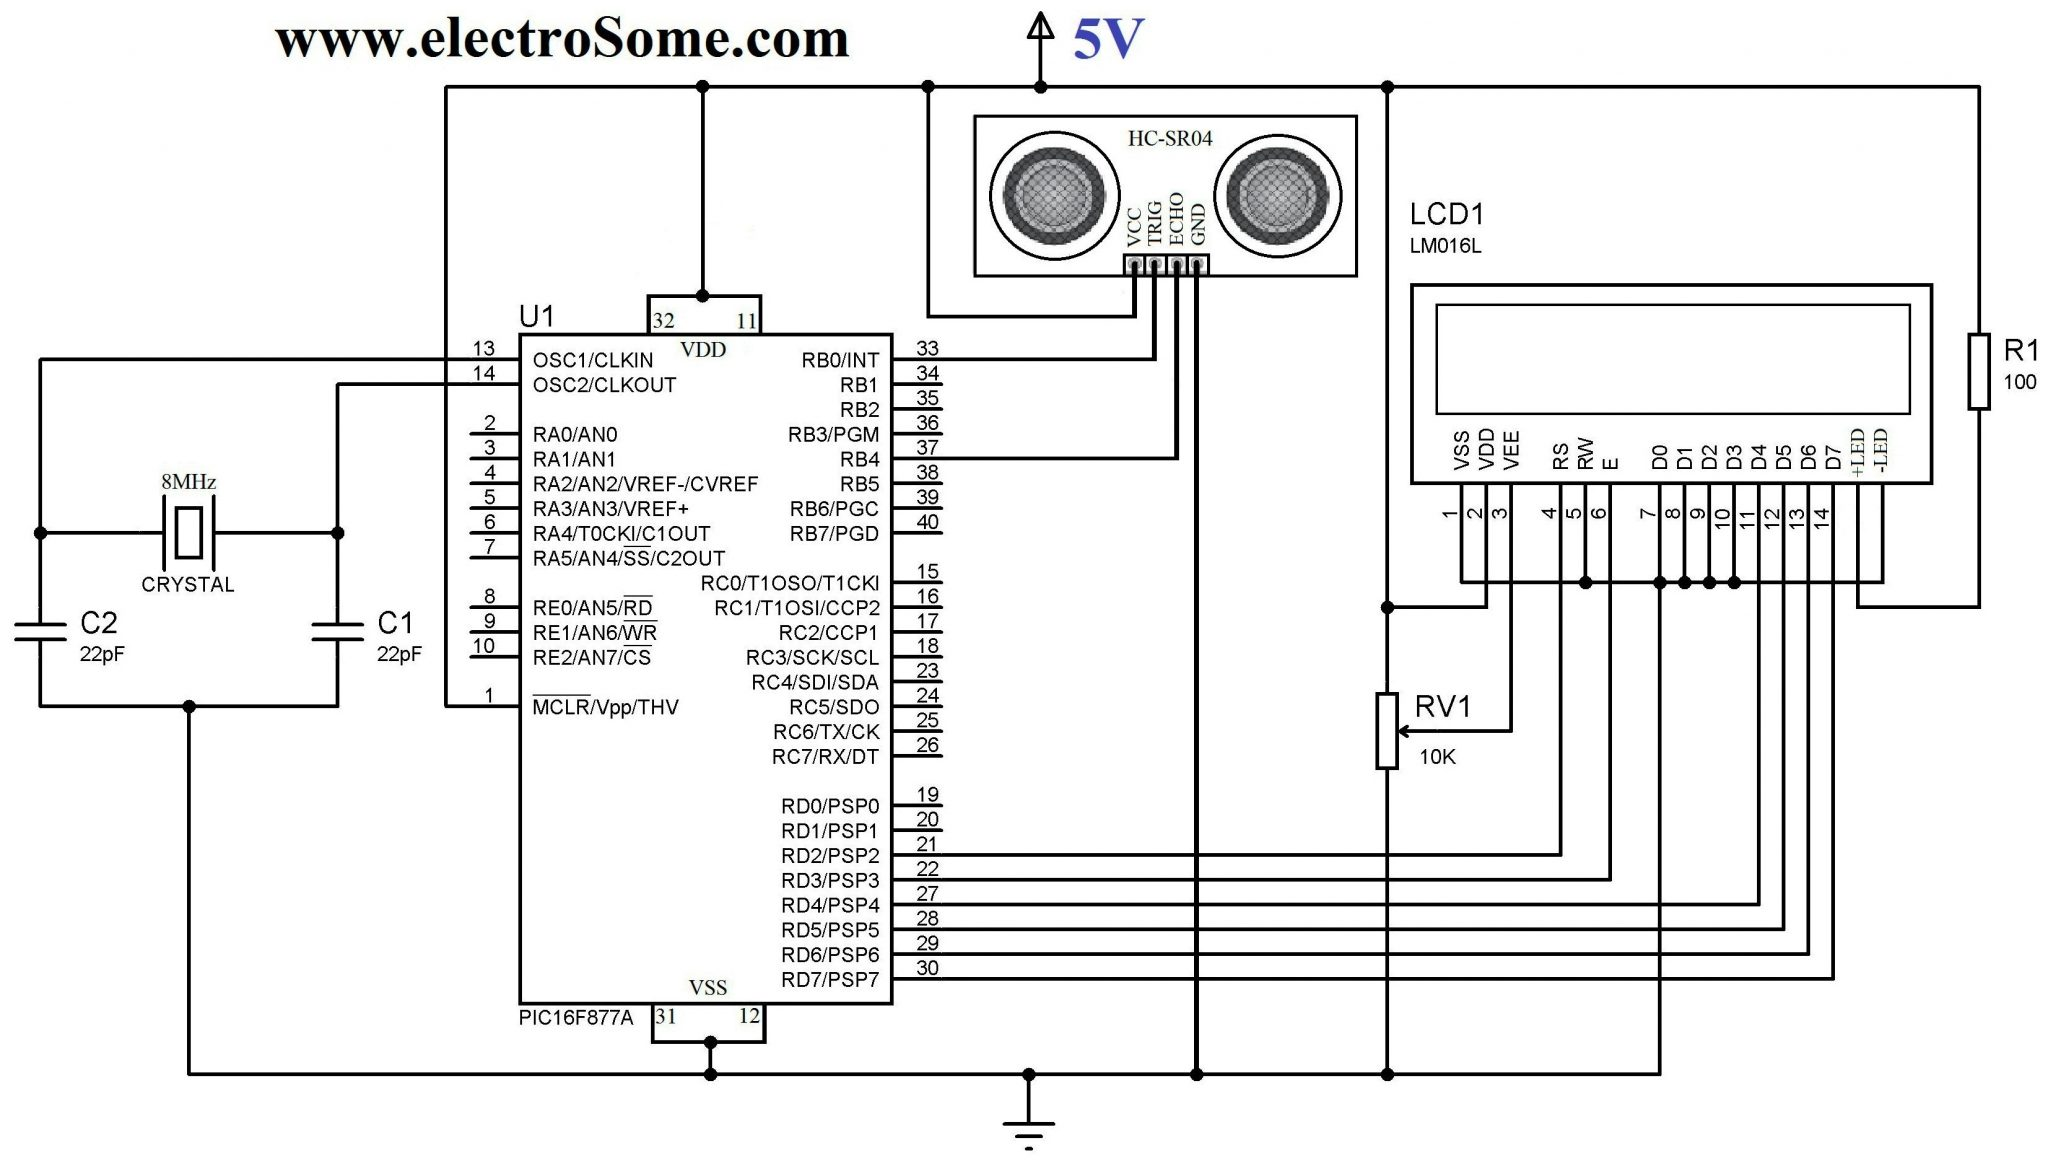 Interfacing HC SR04 Ultrasonic Distance Sensor with PIC Microcontroller interfacing hc sr04 ultrasonic sensor with pic microcontroller 5R55E Transmission Wiring Diagram at alyssarenee.co